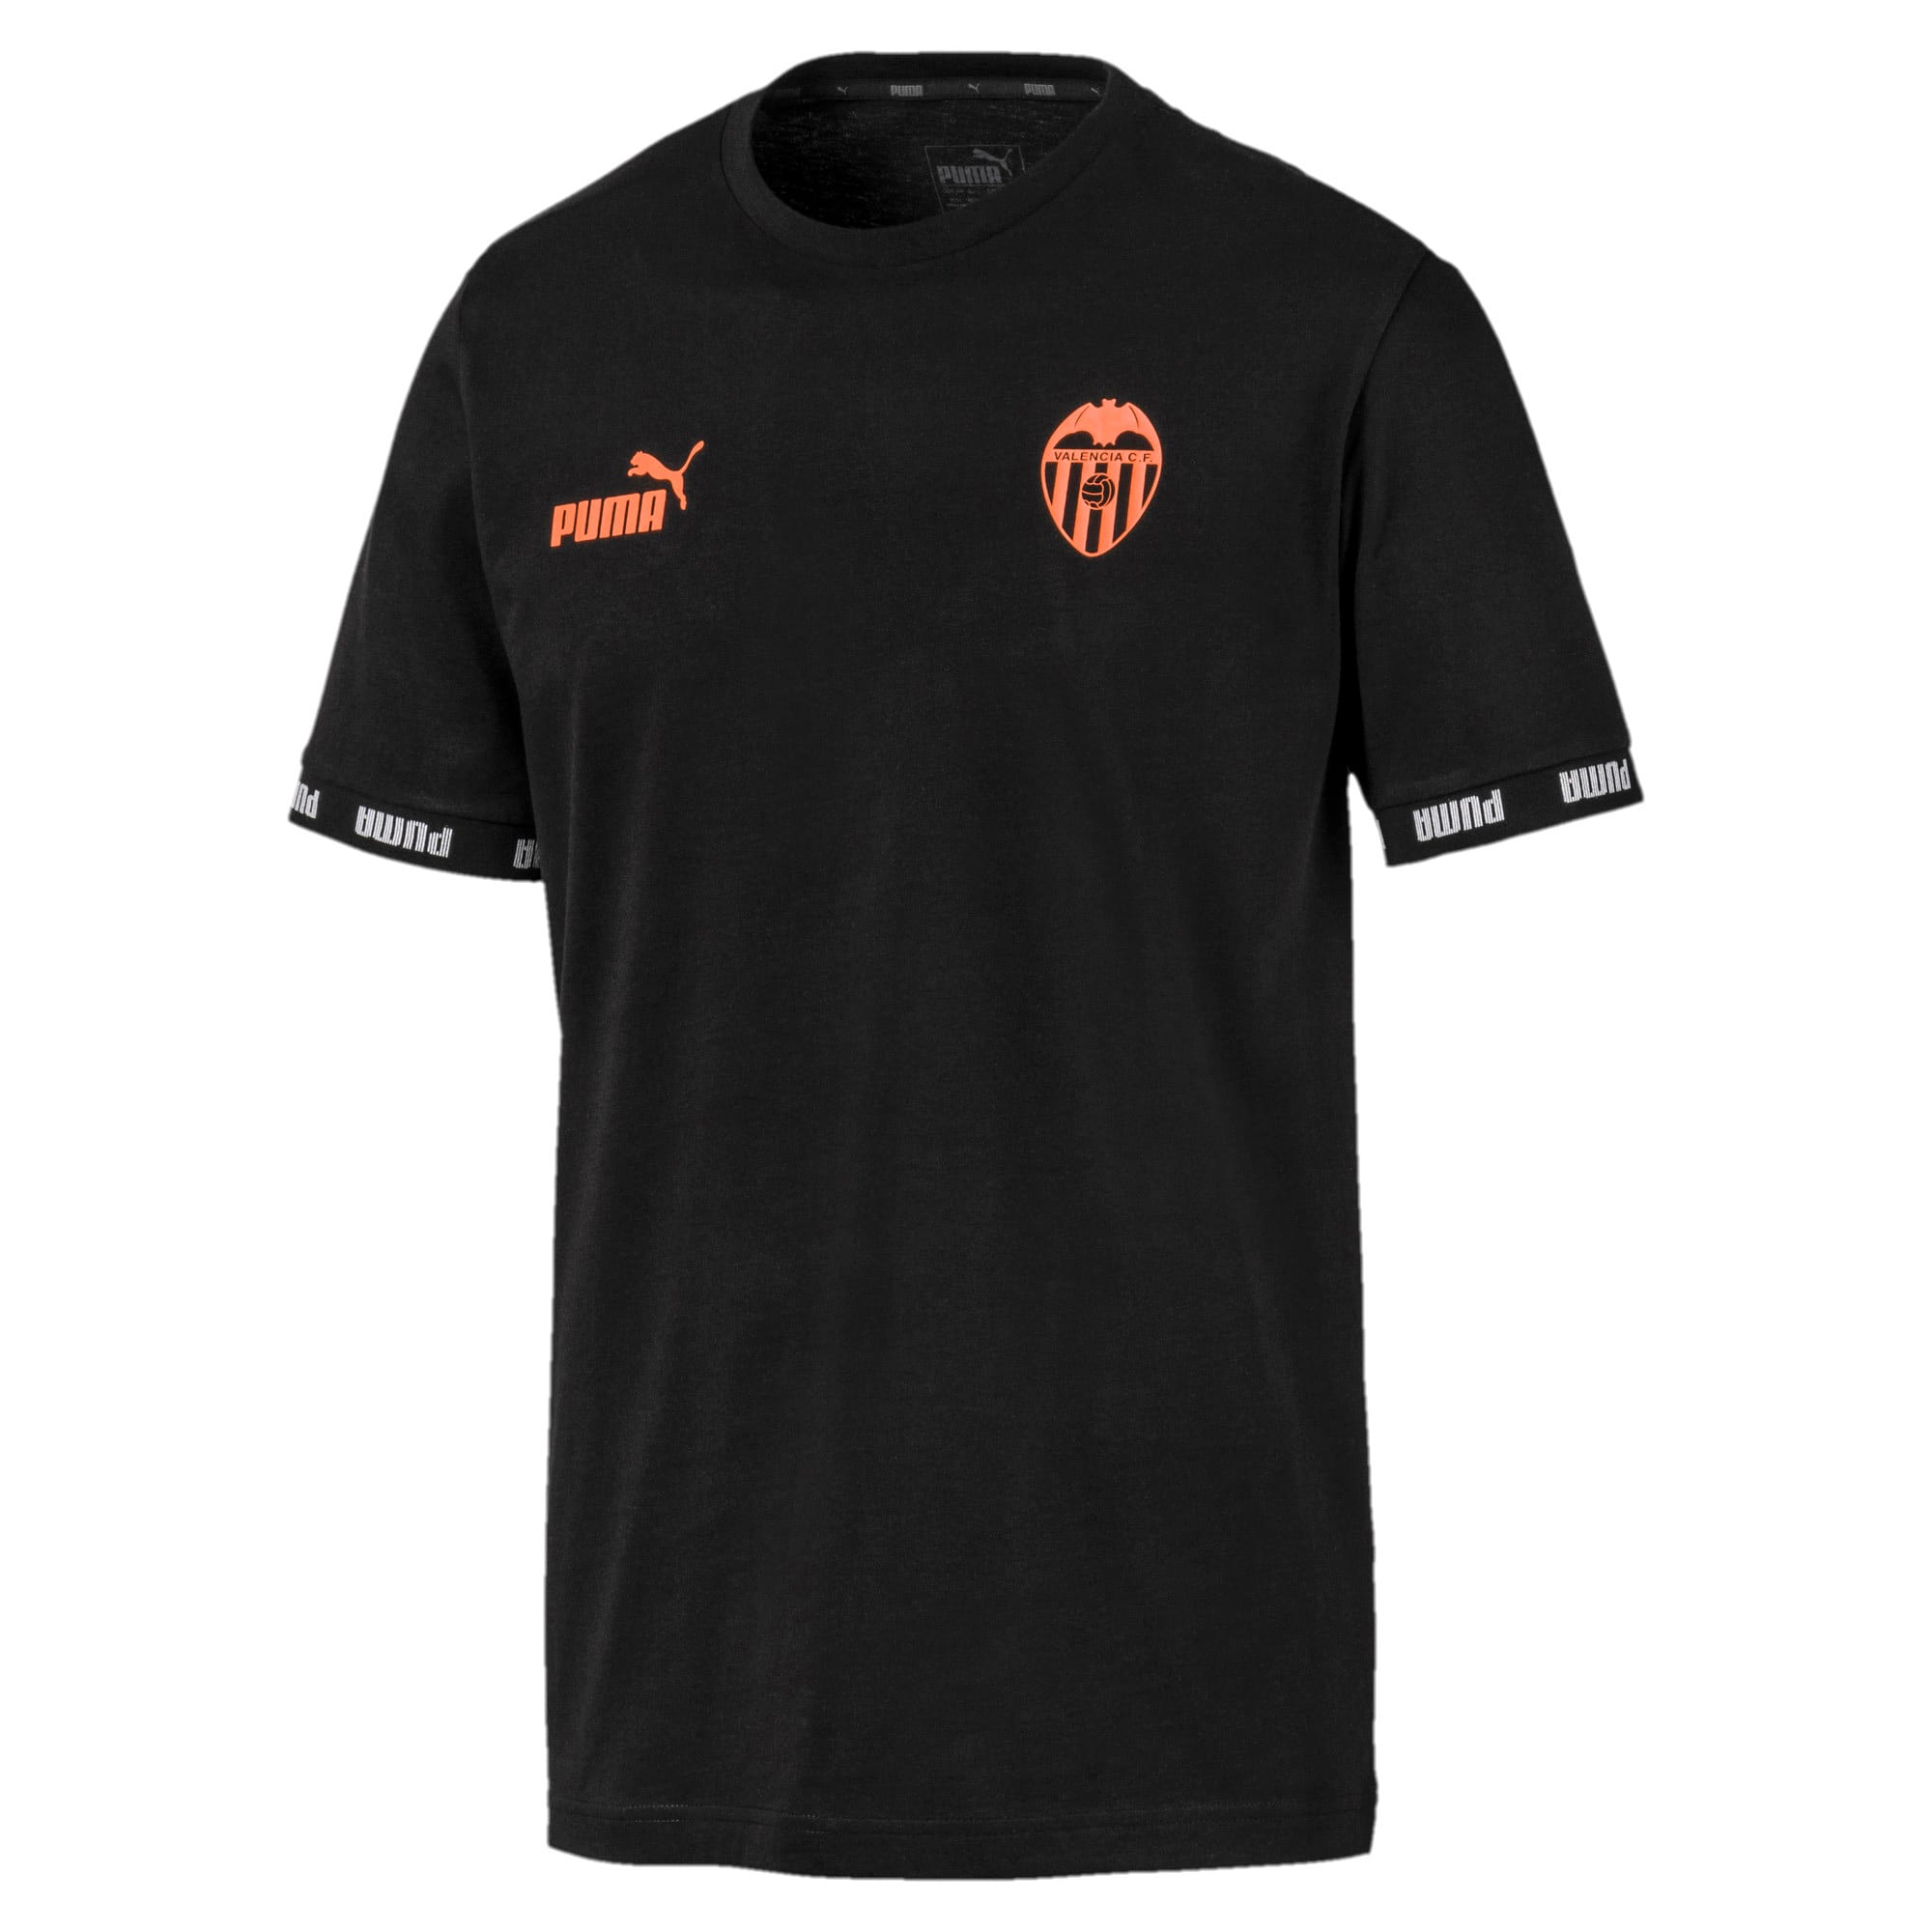 Thumbnail 1 of Valencia CF Football Culture Men's Tee, Puma Black, medium